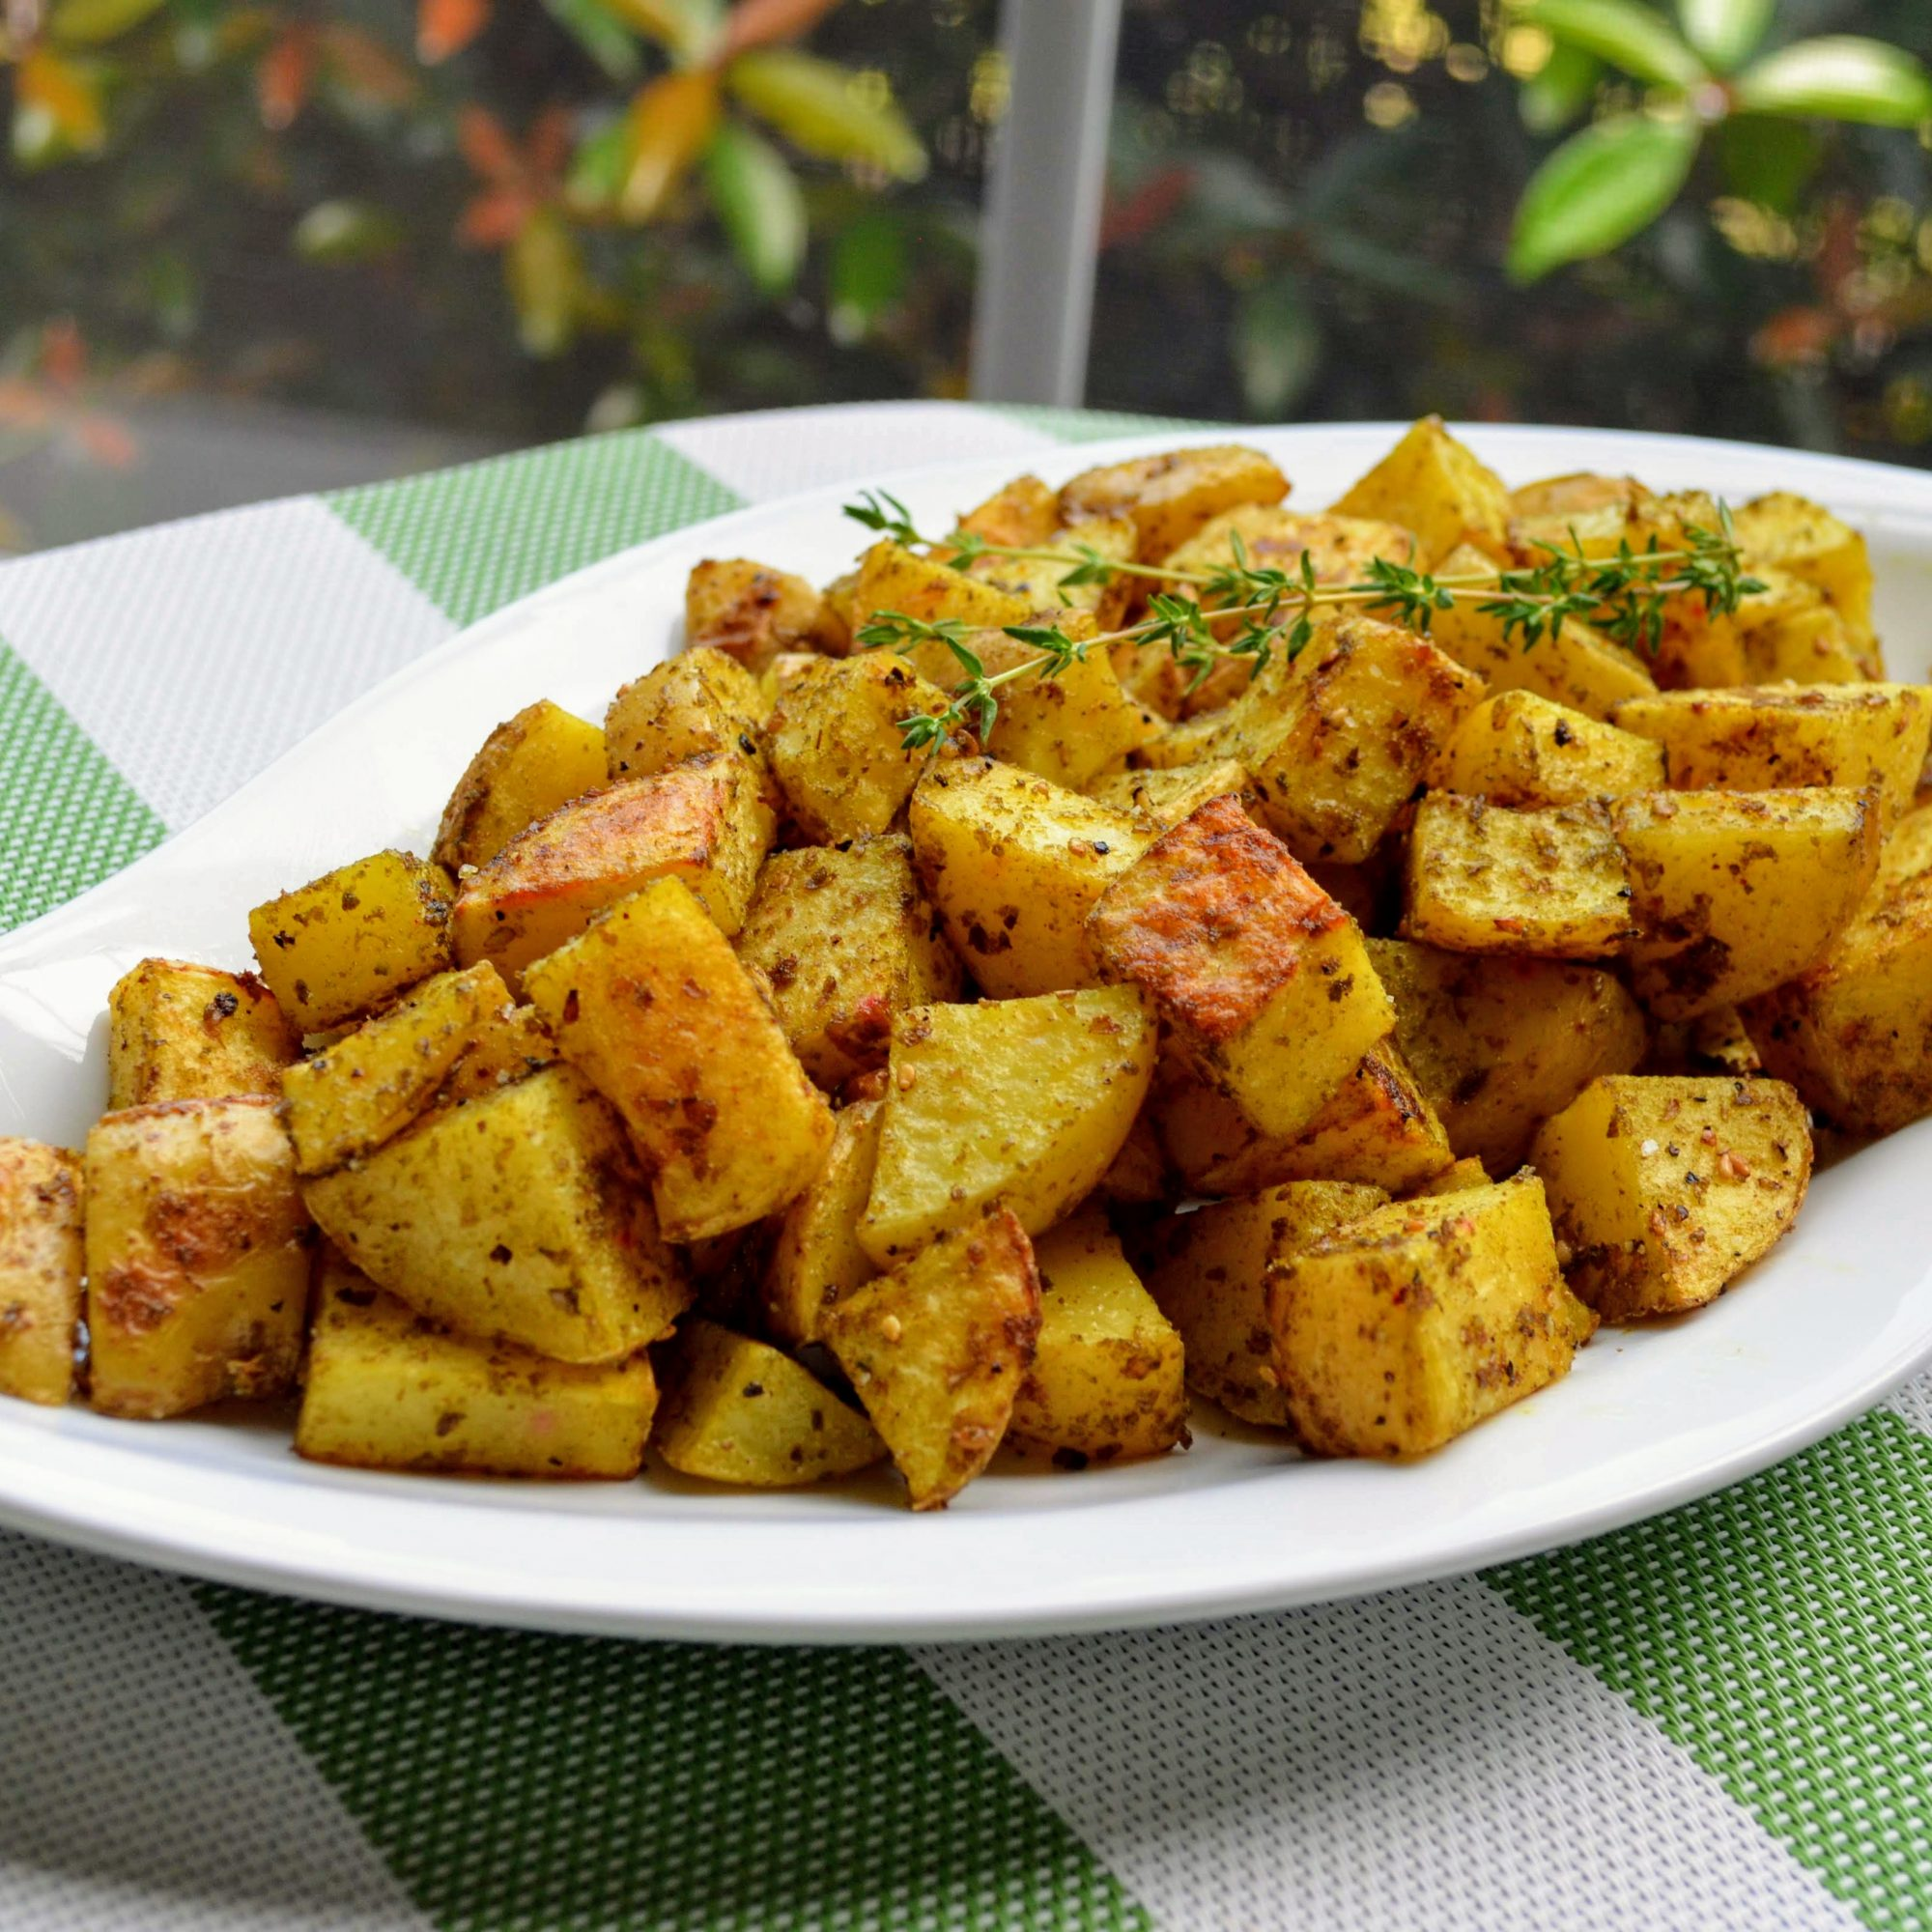 Za'atar Roasted Potatoes in a white dish on a green and white tablecloth